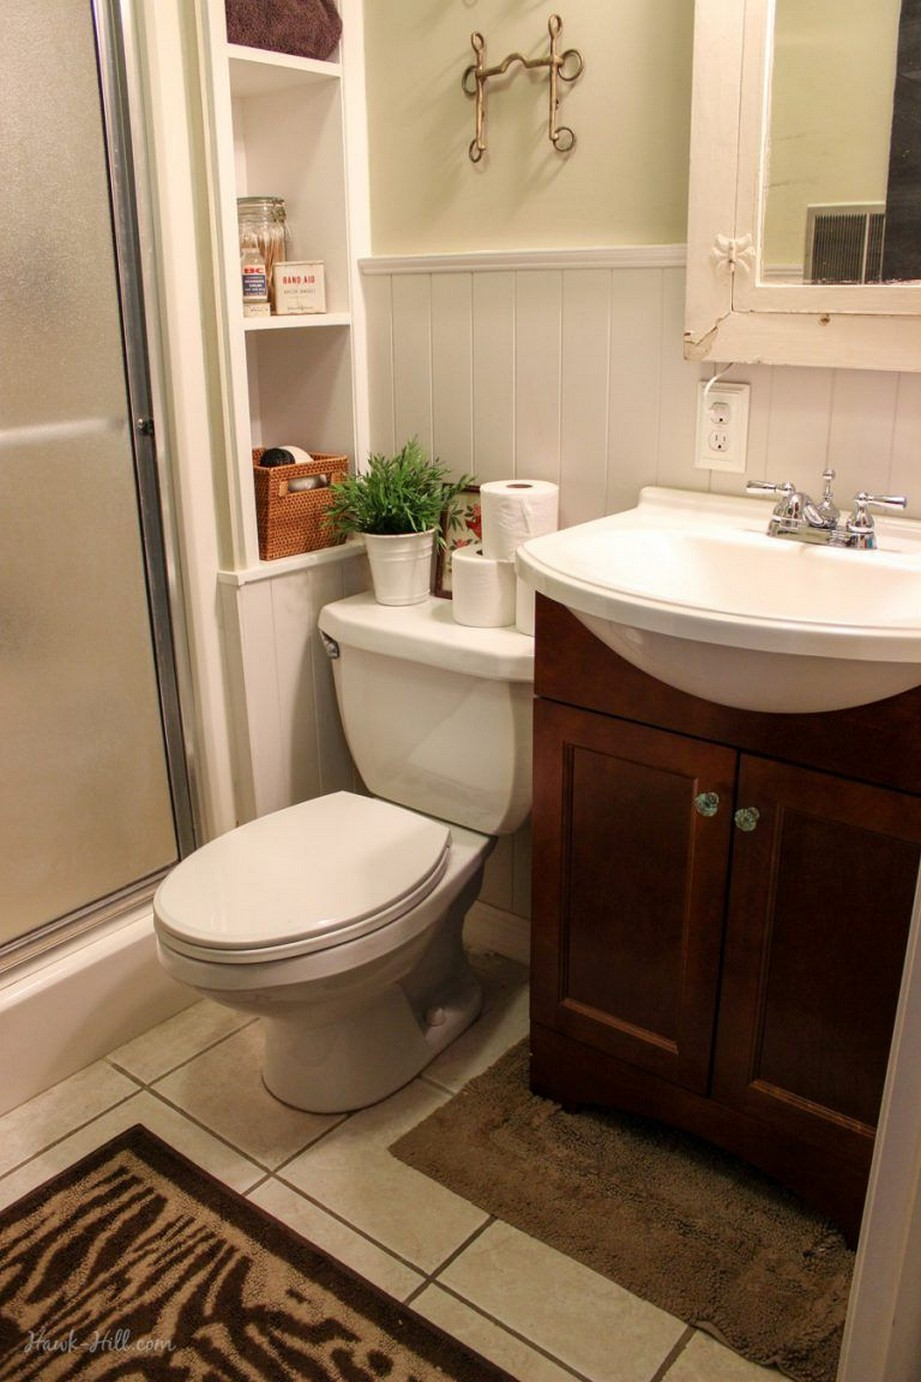 70 Master Bathroom Remodeling For Man and Woman Home Decor 55